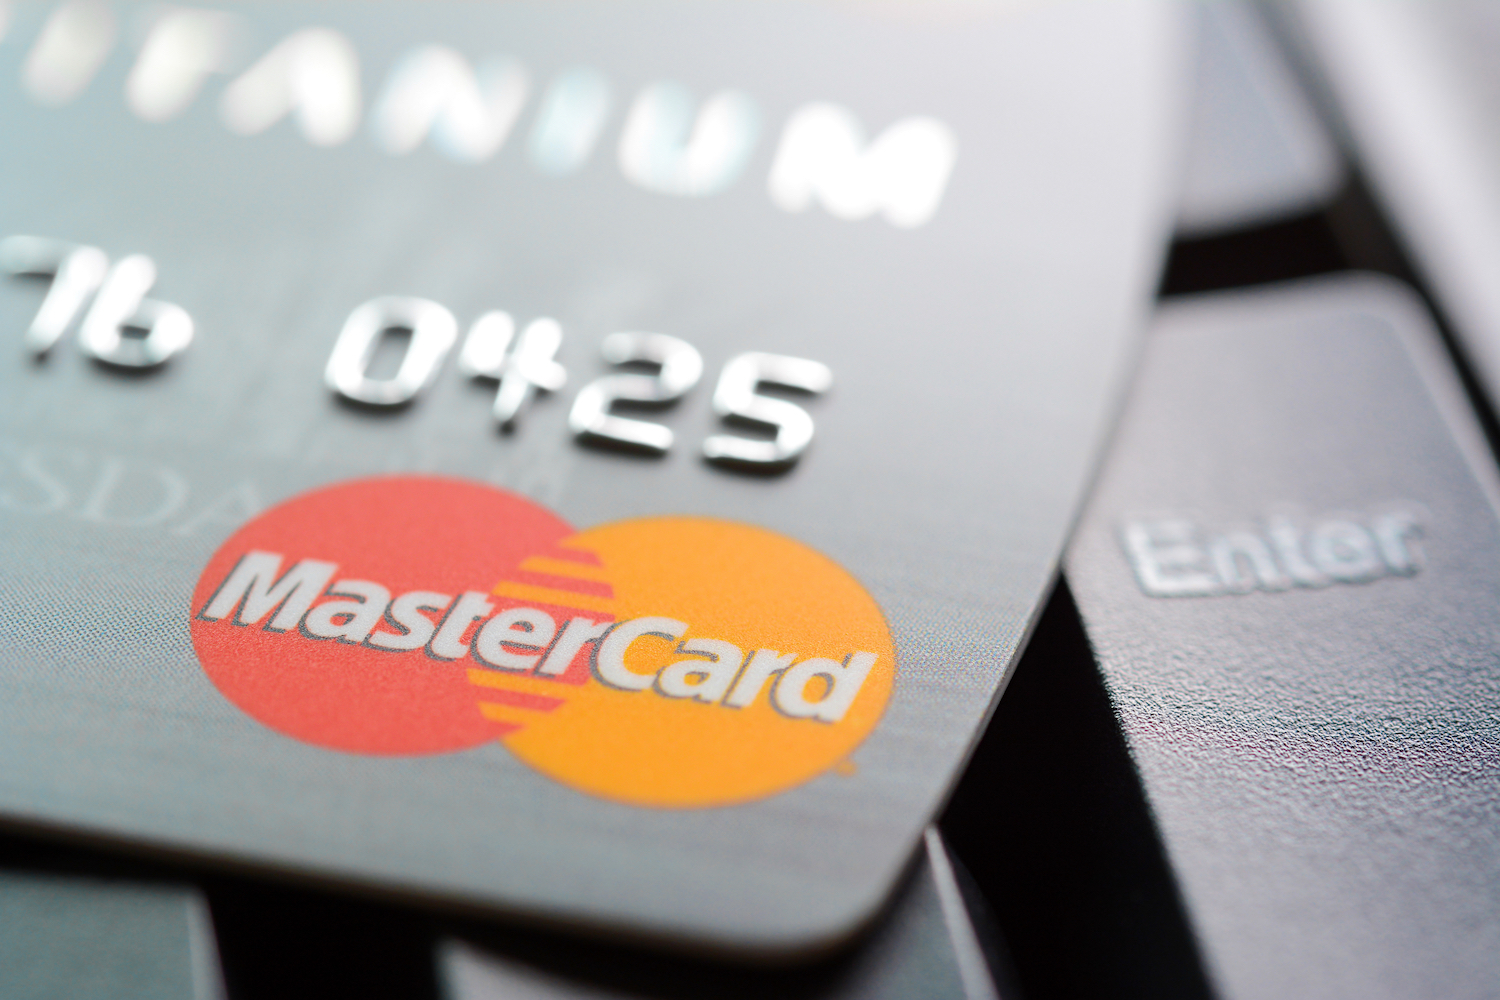 MasterCard ponders Over Capitalizing On Blockchain Technology